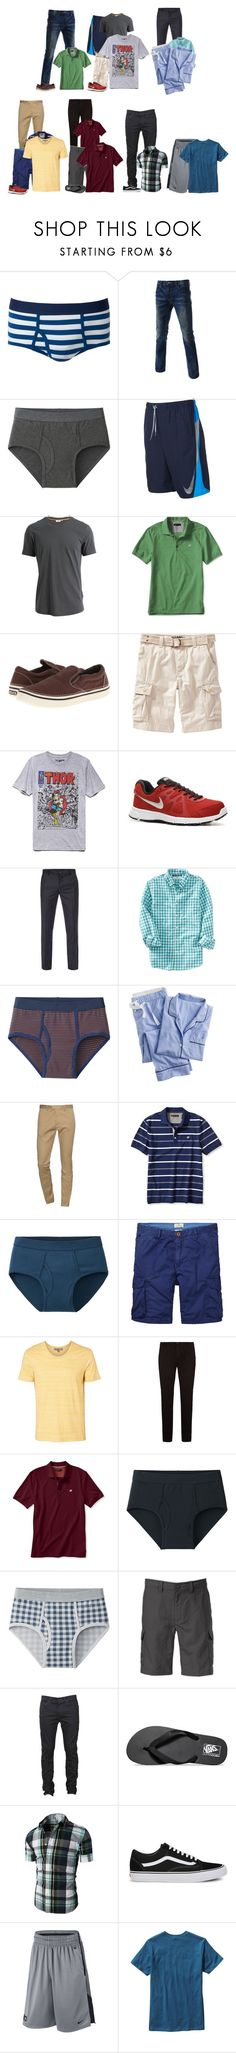 """""""Peter Weekly Outfits"""" by crazypolyfams ❤ liked on Polyvore featuring Uniqlo, TheLees, NIKE, J.Lindeberg, Banana Republic, Crocs, Old Navy, 21 Men, Paul Smith and J.Crew"""